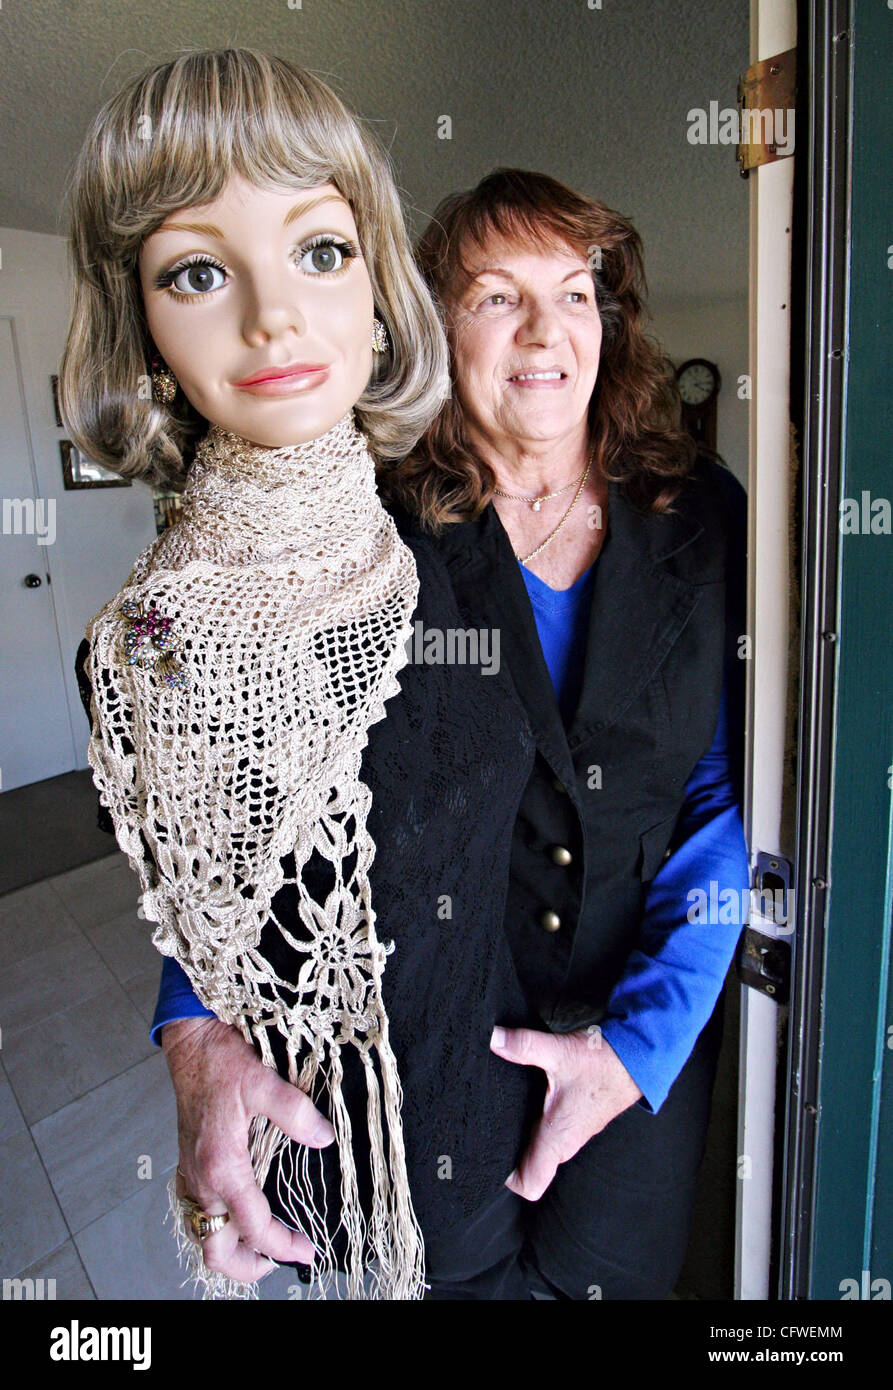 Kadie Amaral and one of her mannequins greet guests at her Livermore front door. (Jay Solmonson/Tri-Valley Herald) - Stock Image